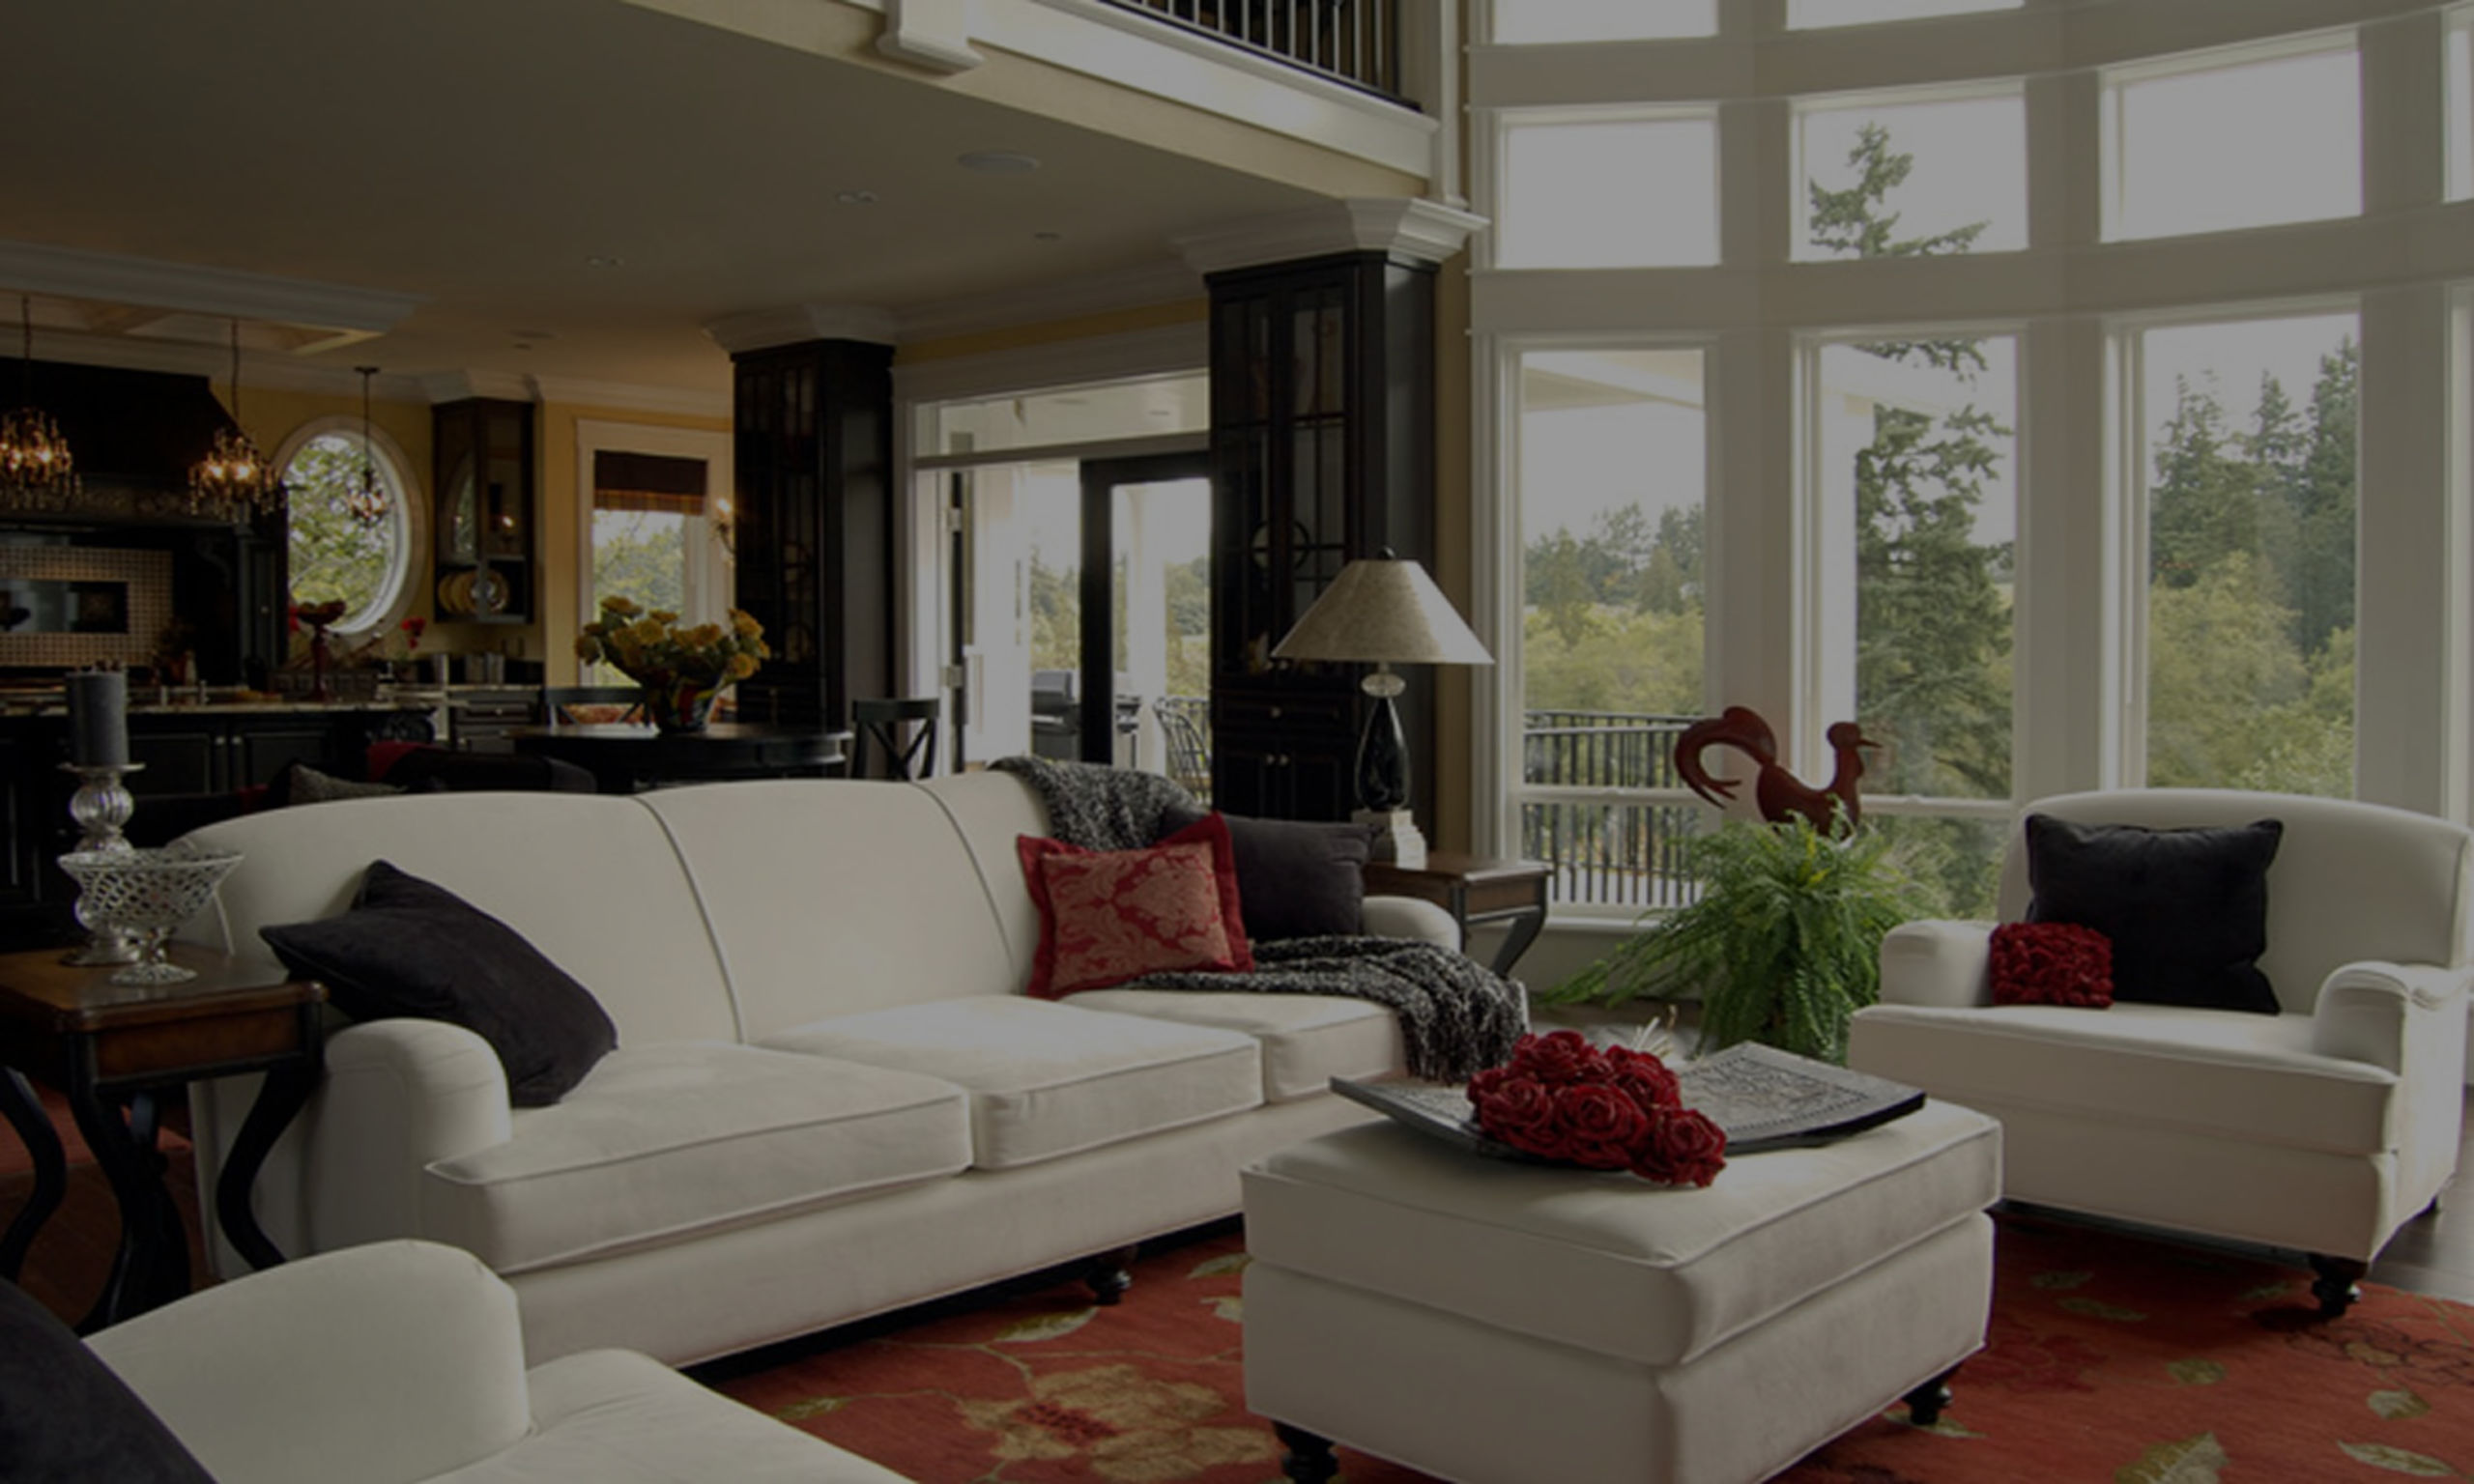 Home Staging to Sell: The Latest Techniques That Really Work